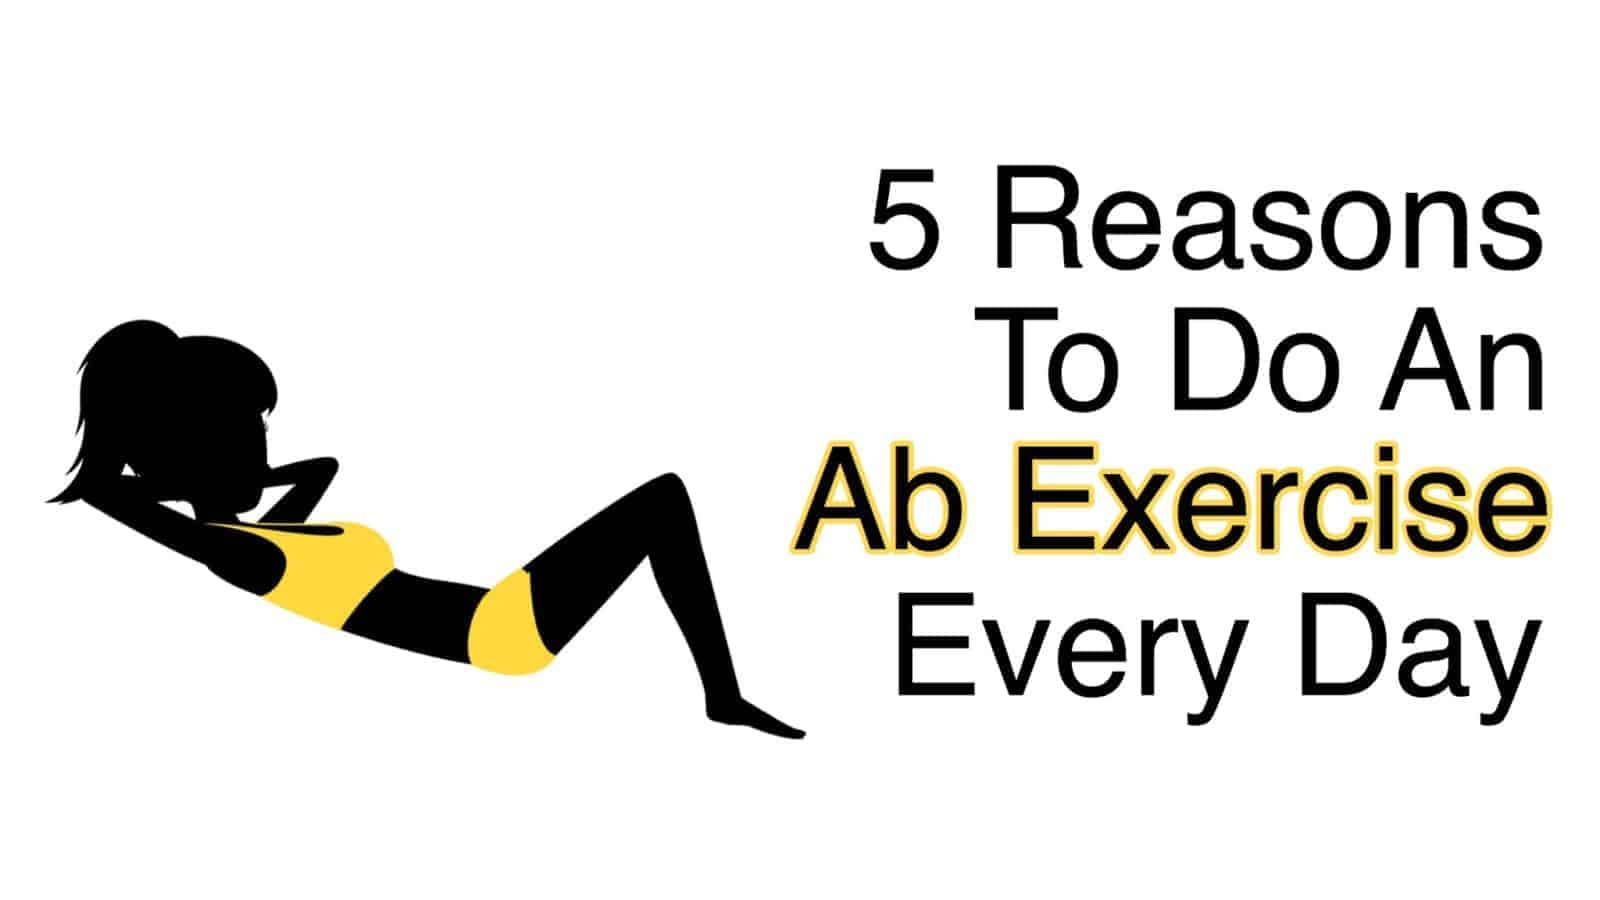 5 Reasons To Do An Ab Exercise Every Day